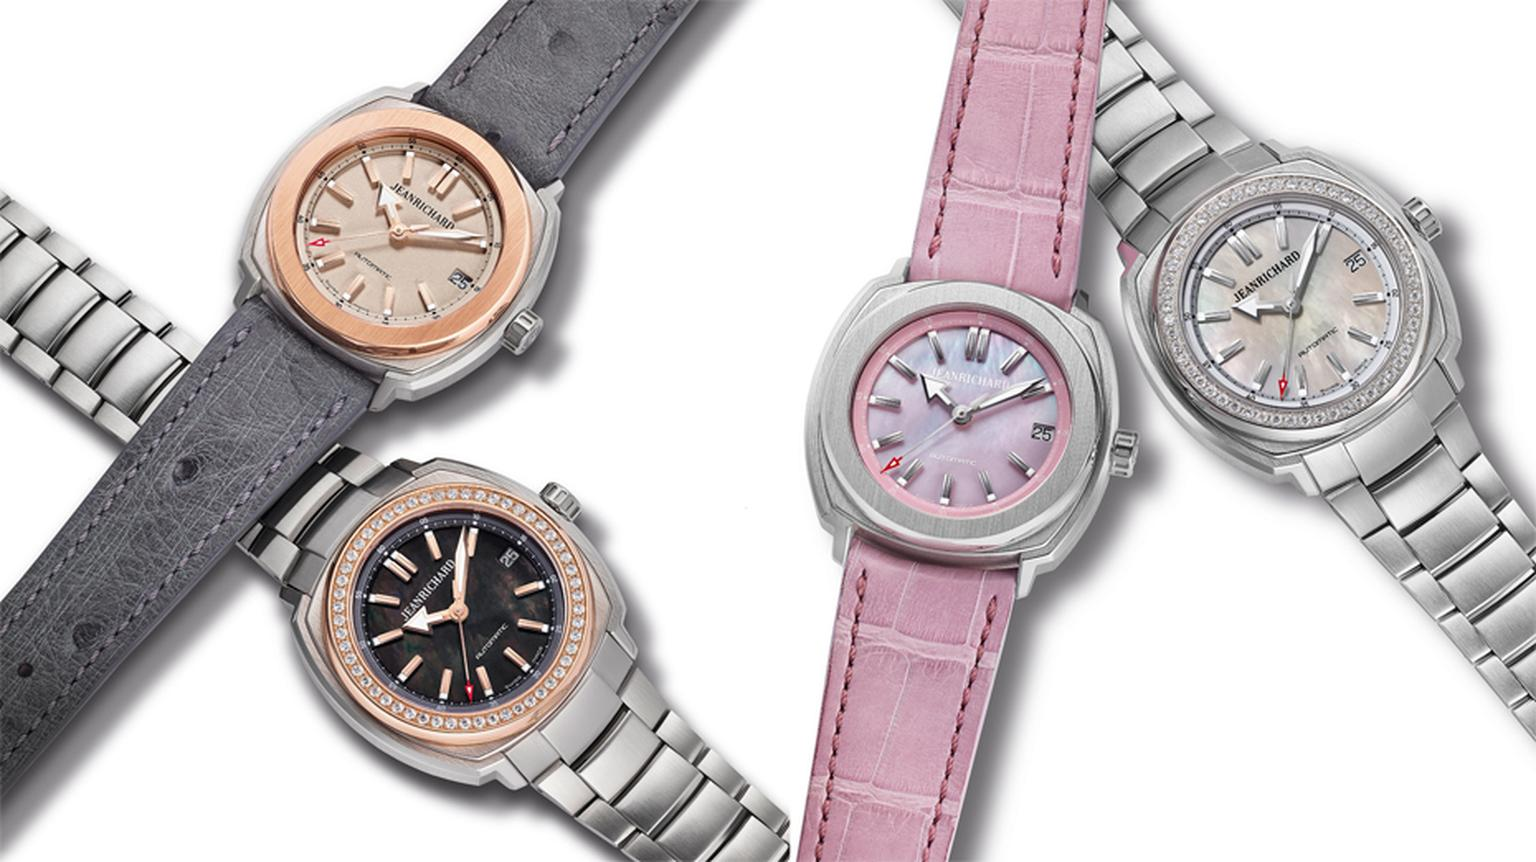 JeanRichard watches for women: size is important with the new Terrascope ladies watches